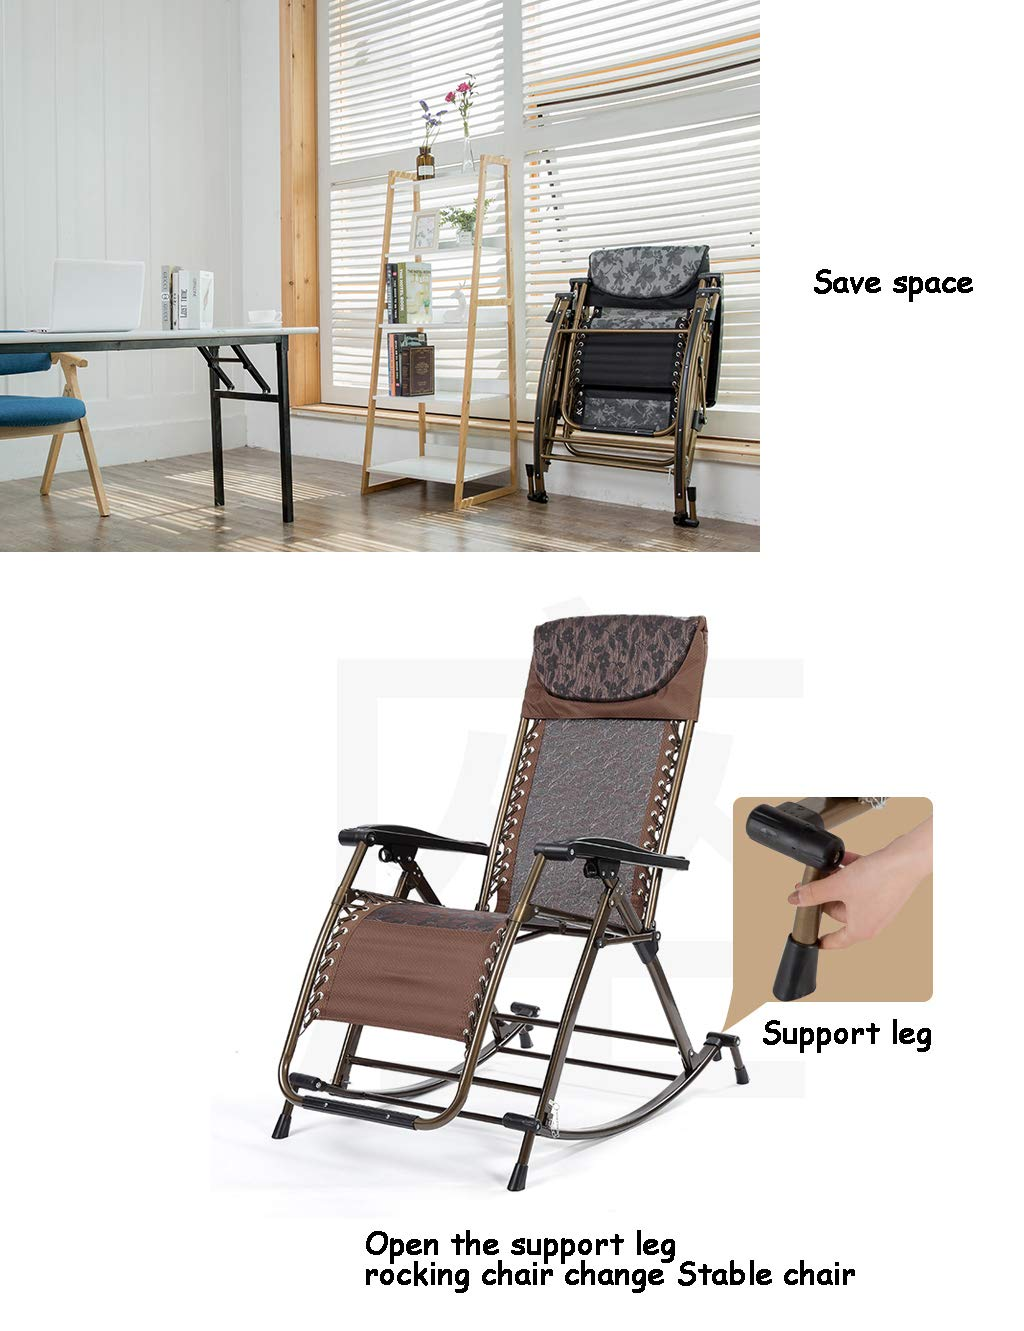 Amazon.com: Relax Rocking Chair Perfect for Outdoor or ...